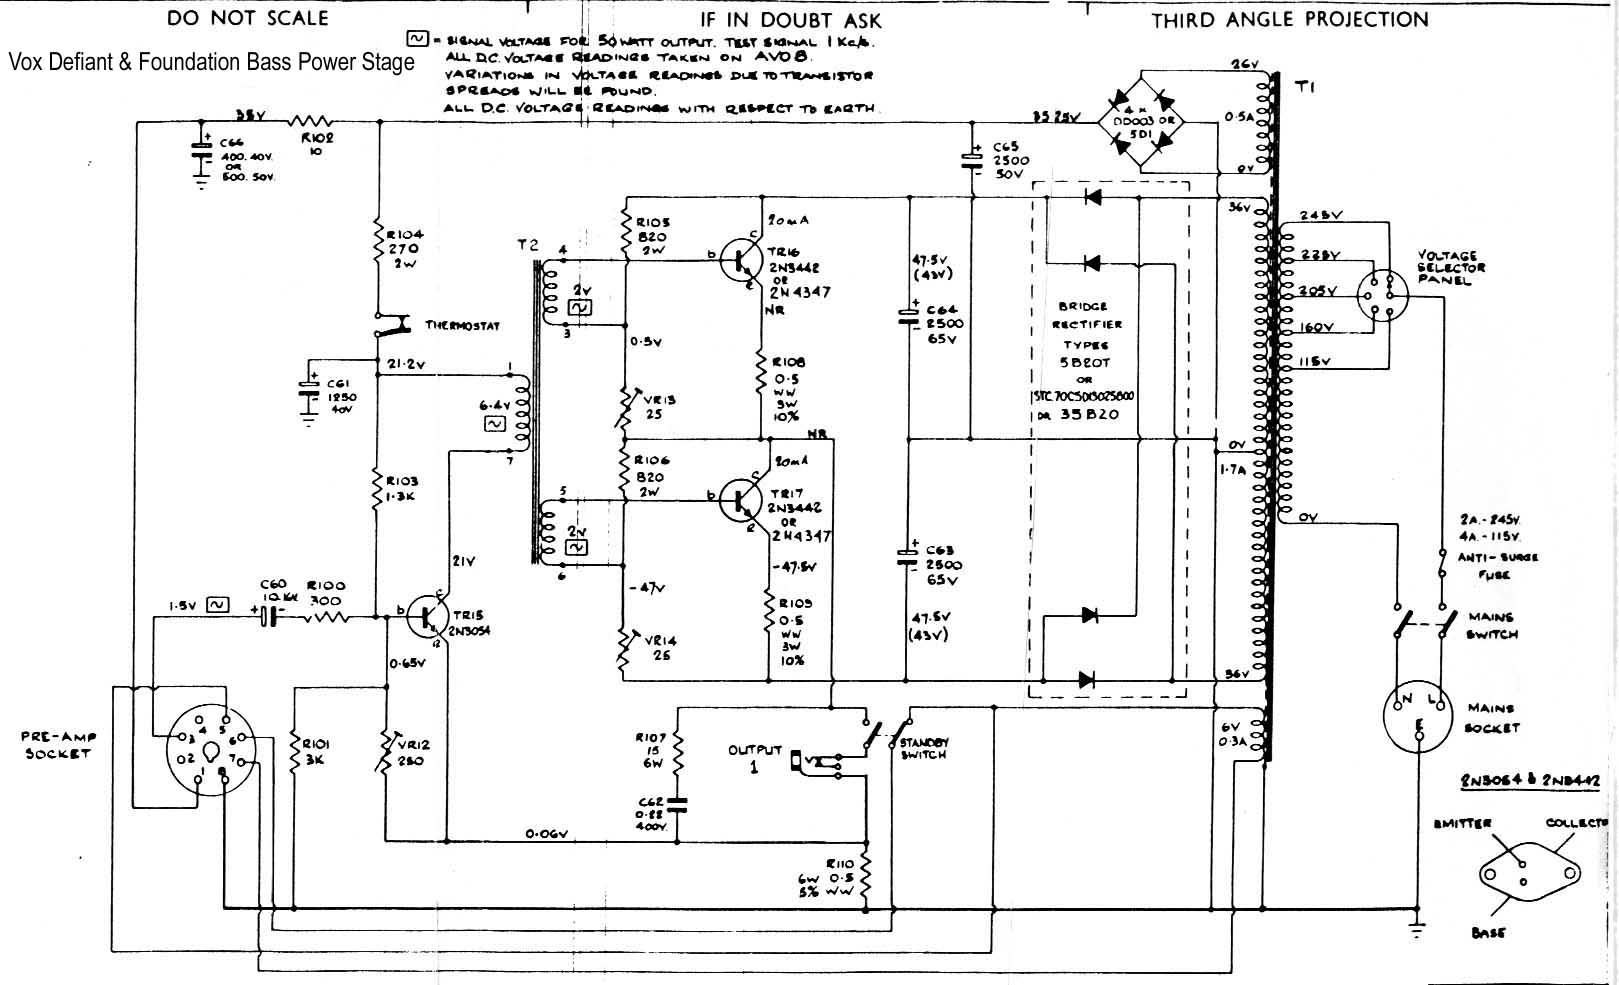 Power Circuit Diagrams - Wiring Diagrams Place